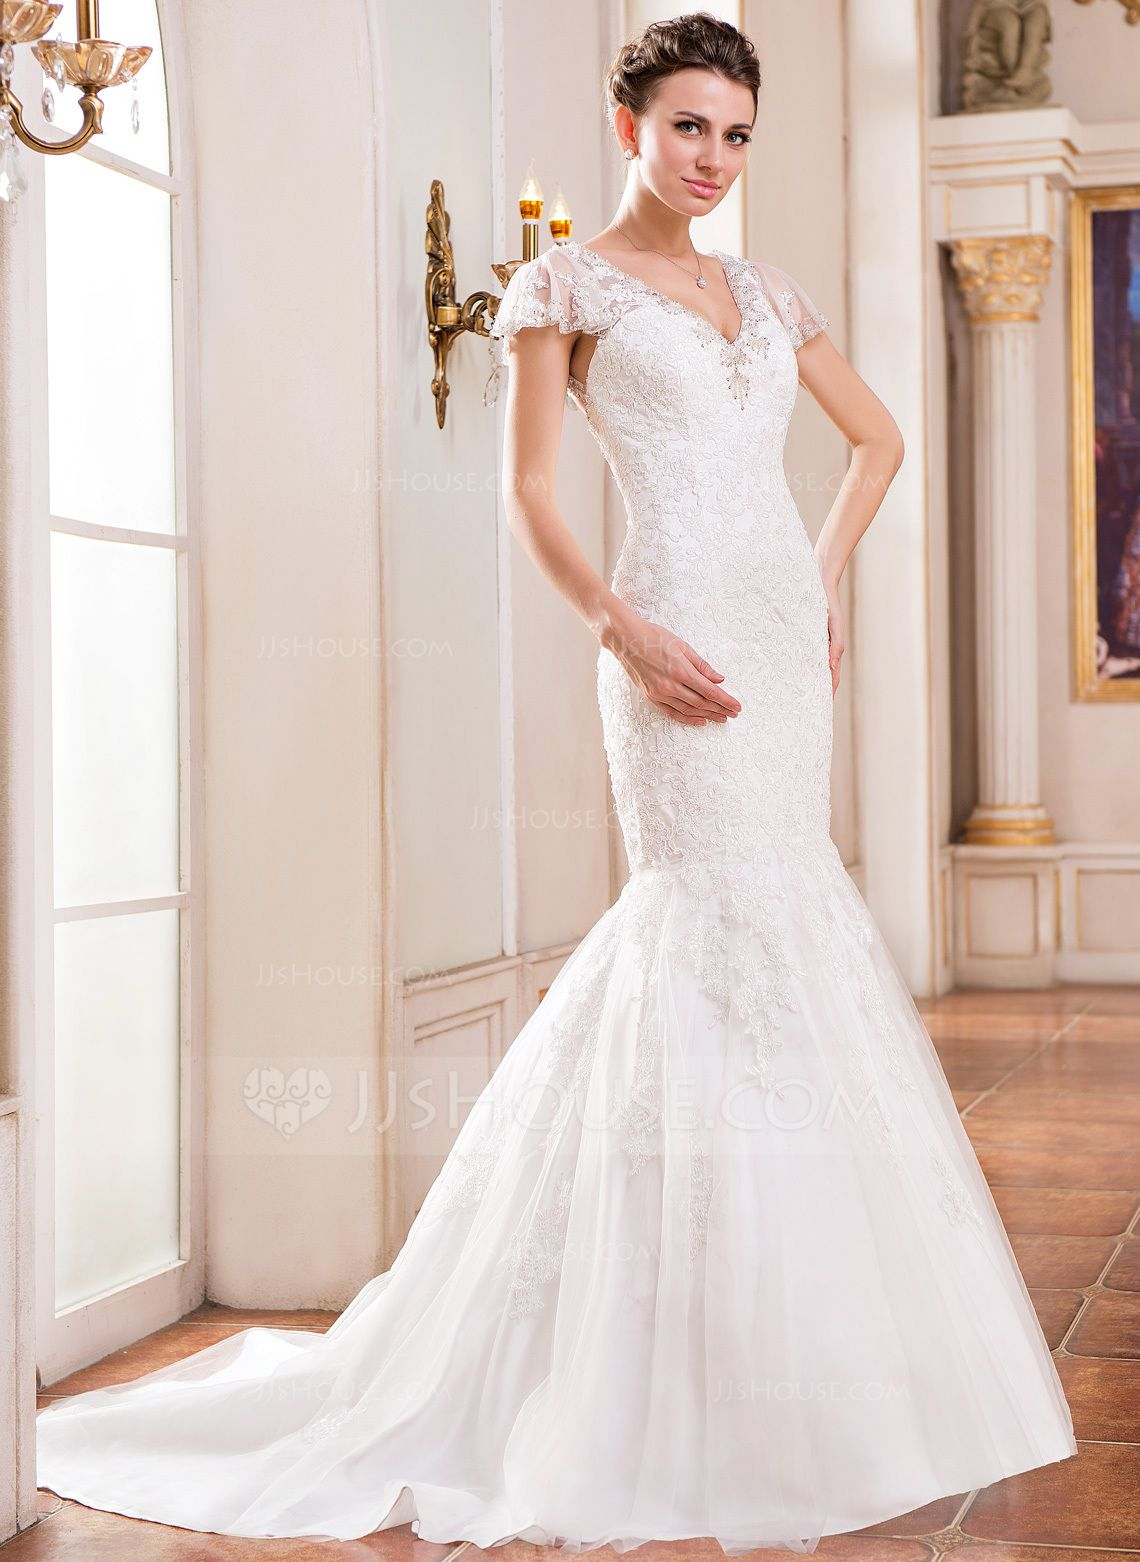 Short lace wedding dress with train  TrumpetMermaid Vneck Court Train Beading Sequins Zipper Up Covered